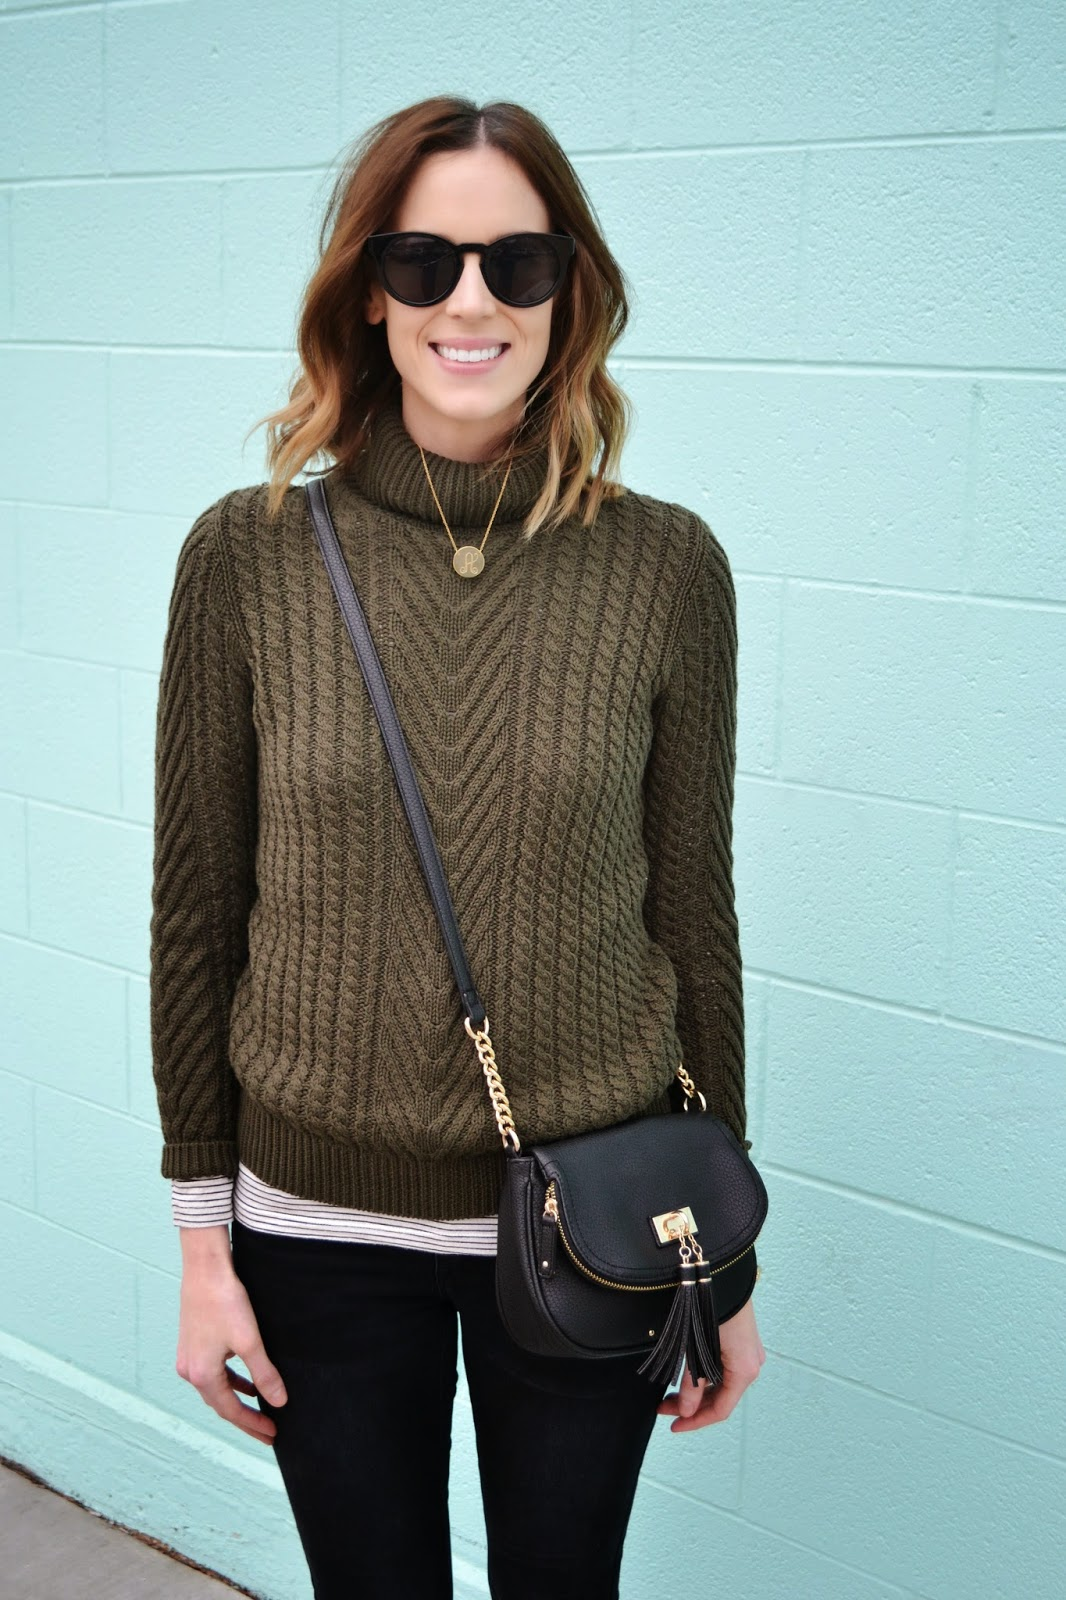 olive green turtleneck, black and white striped tee, black jeans, black booties, black and gold